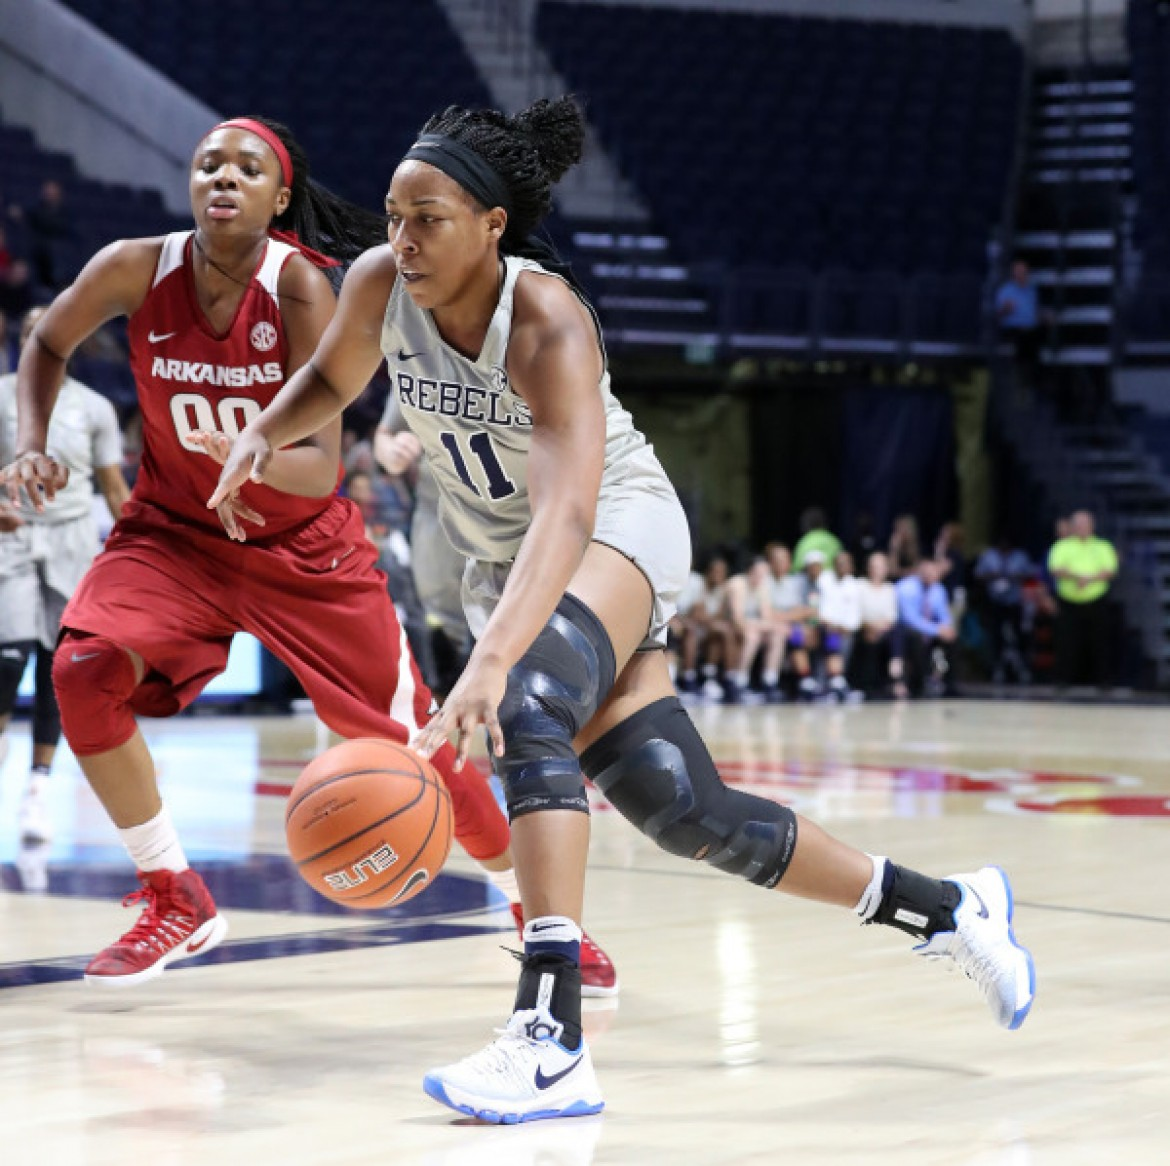 Shequila Joseph notches double-double to lead Ole Miss past Arkansas, 73-64